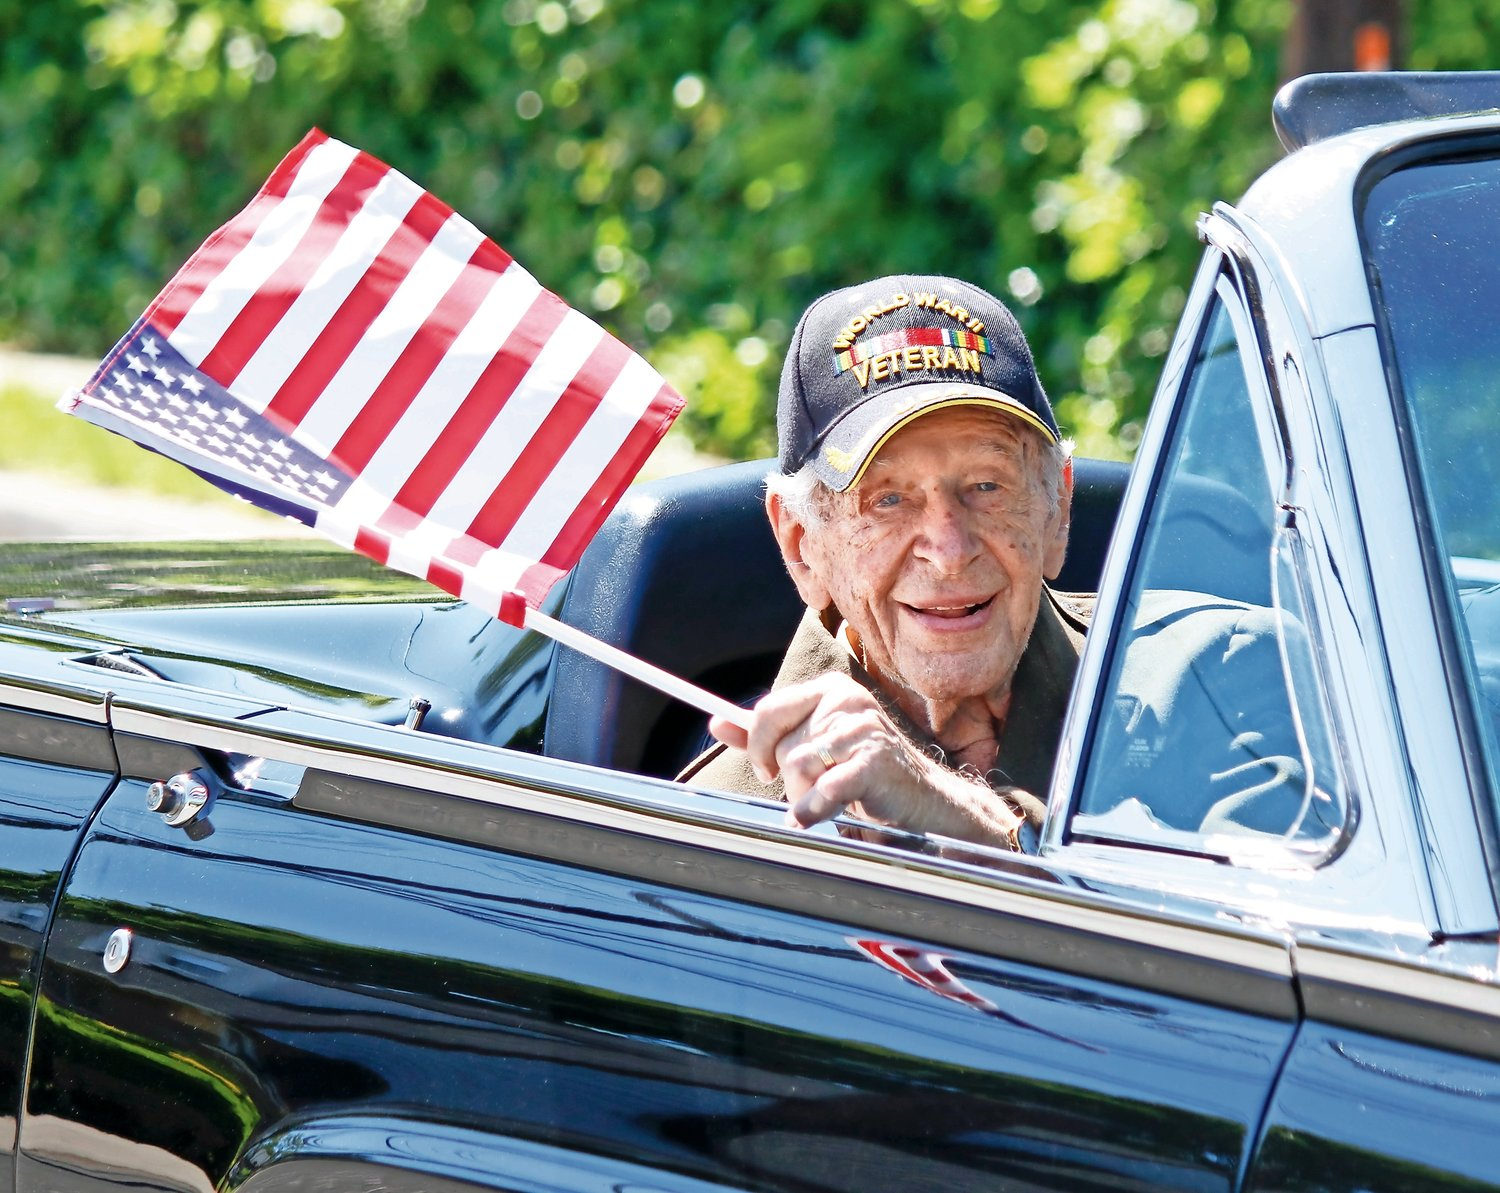 West Hempstead Army veteran lived in the community for more than 60 years.